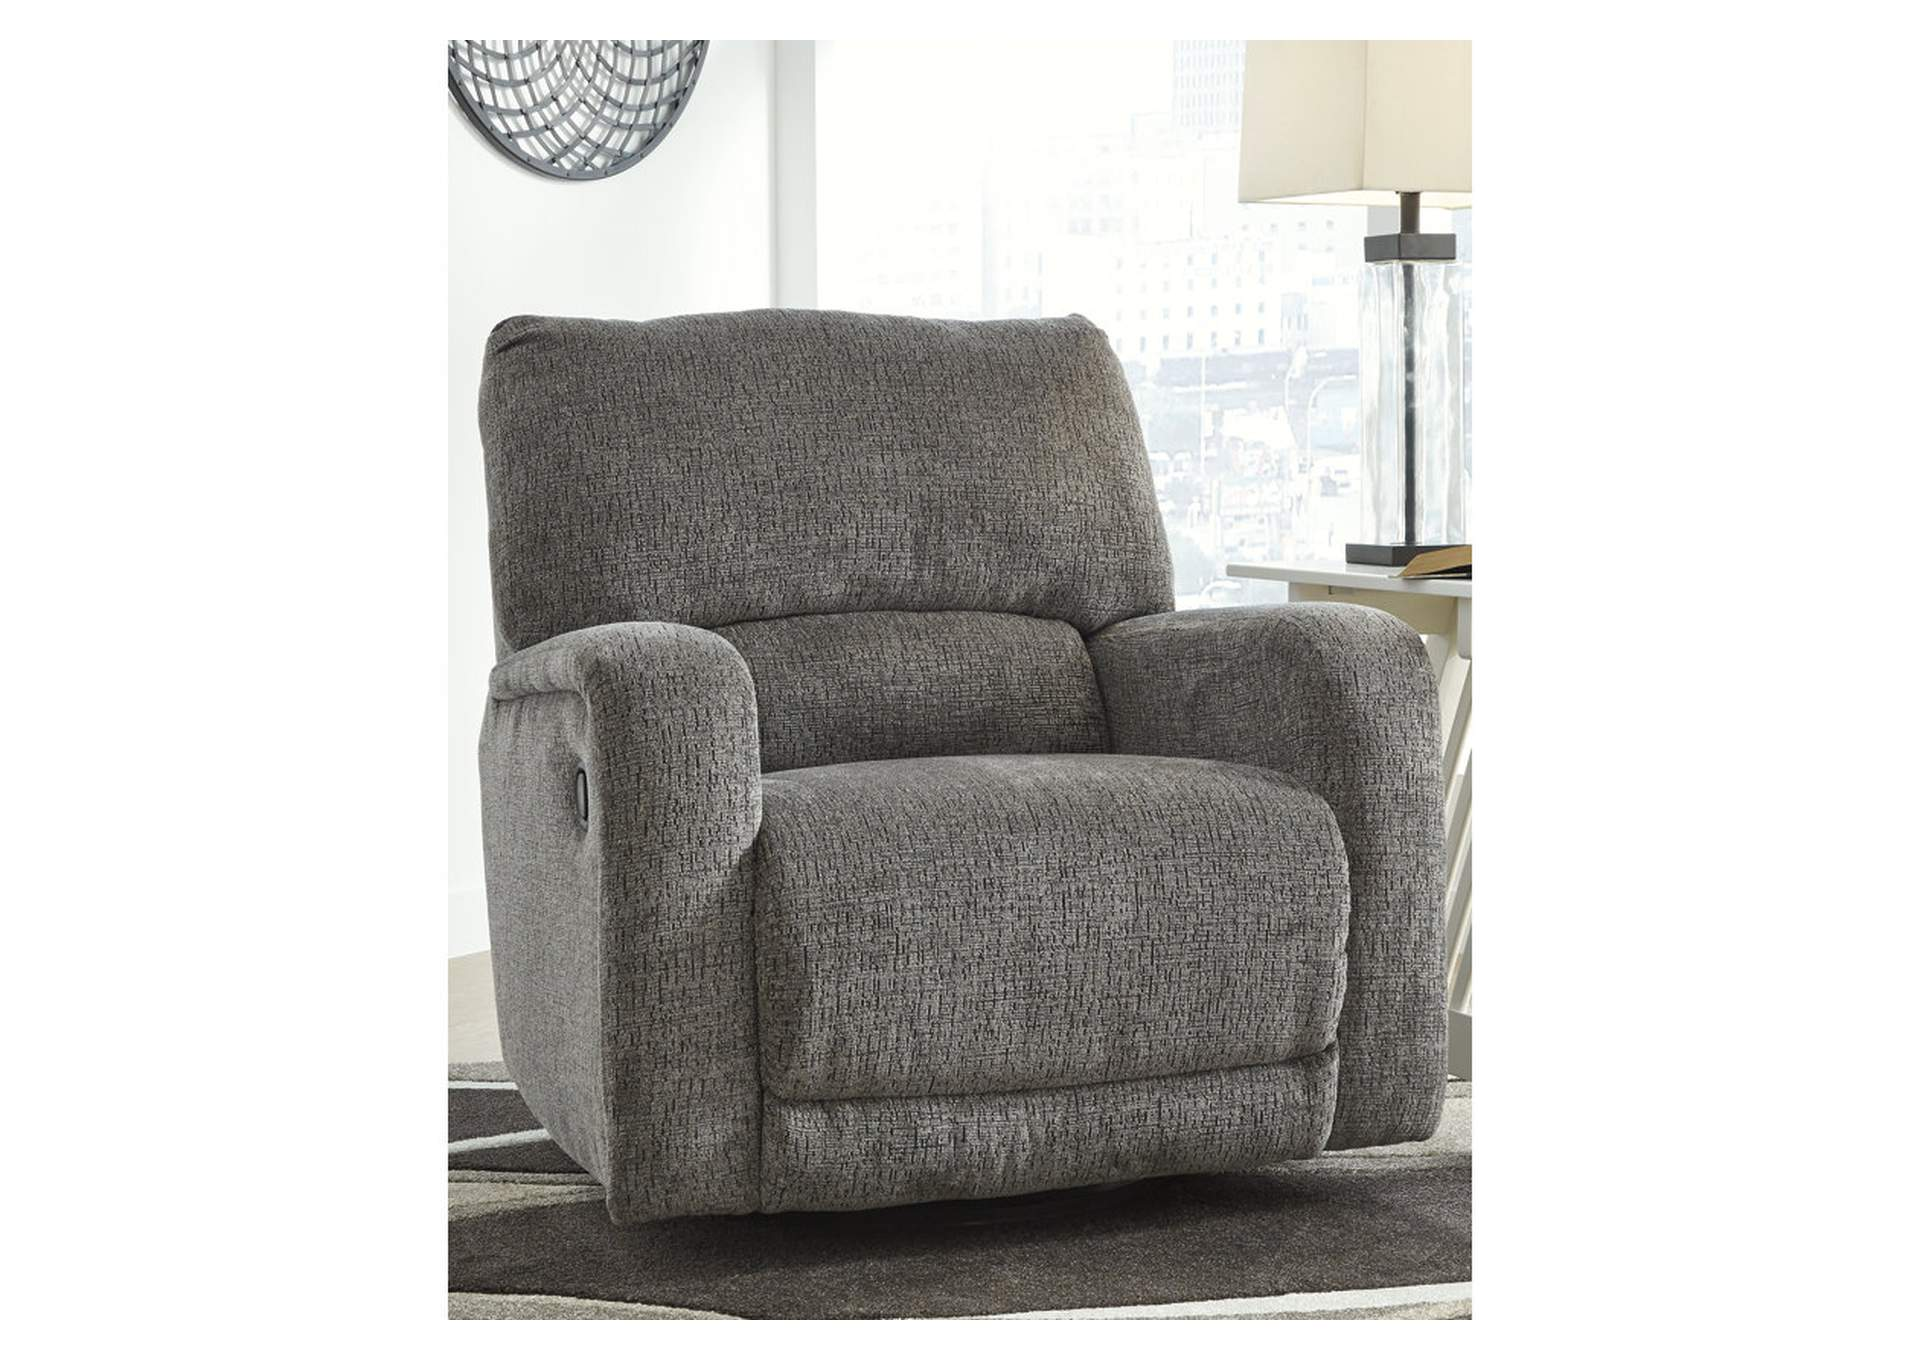 Wittlich Slate Swivel Glider Recliner,Signature Design By Ashley